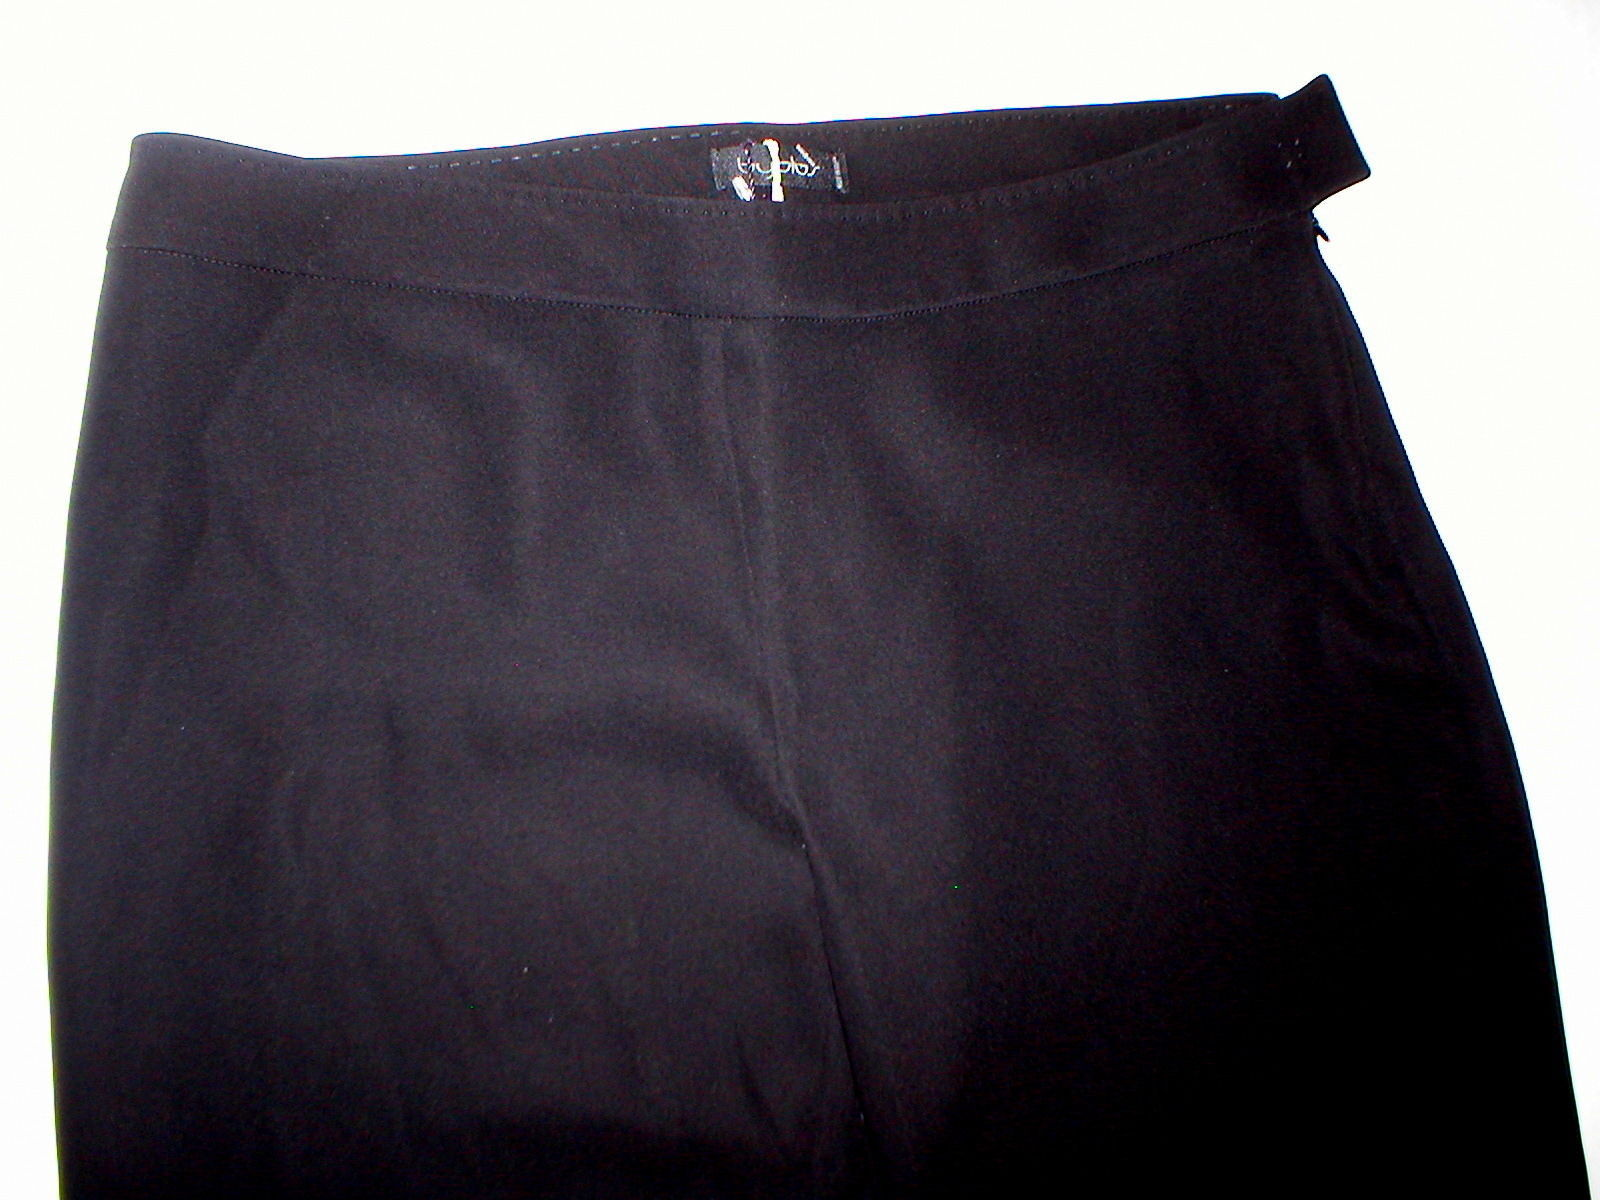 Womens Designer Italy Byblos Black Cuffed Trouser Pants 44 8 10 Genny Moda Tall